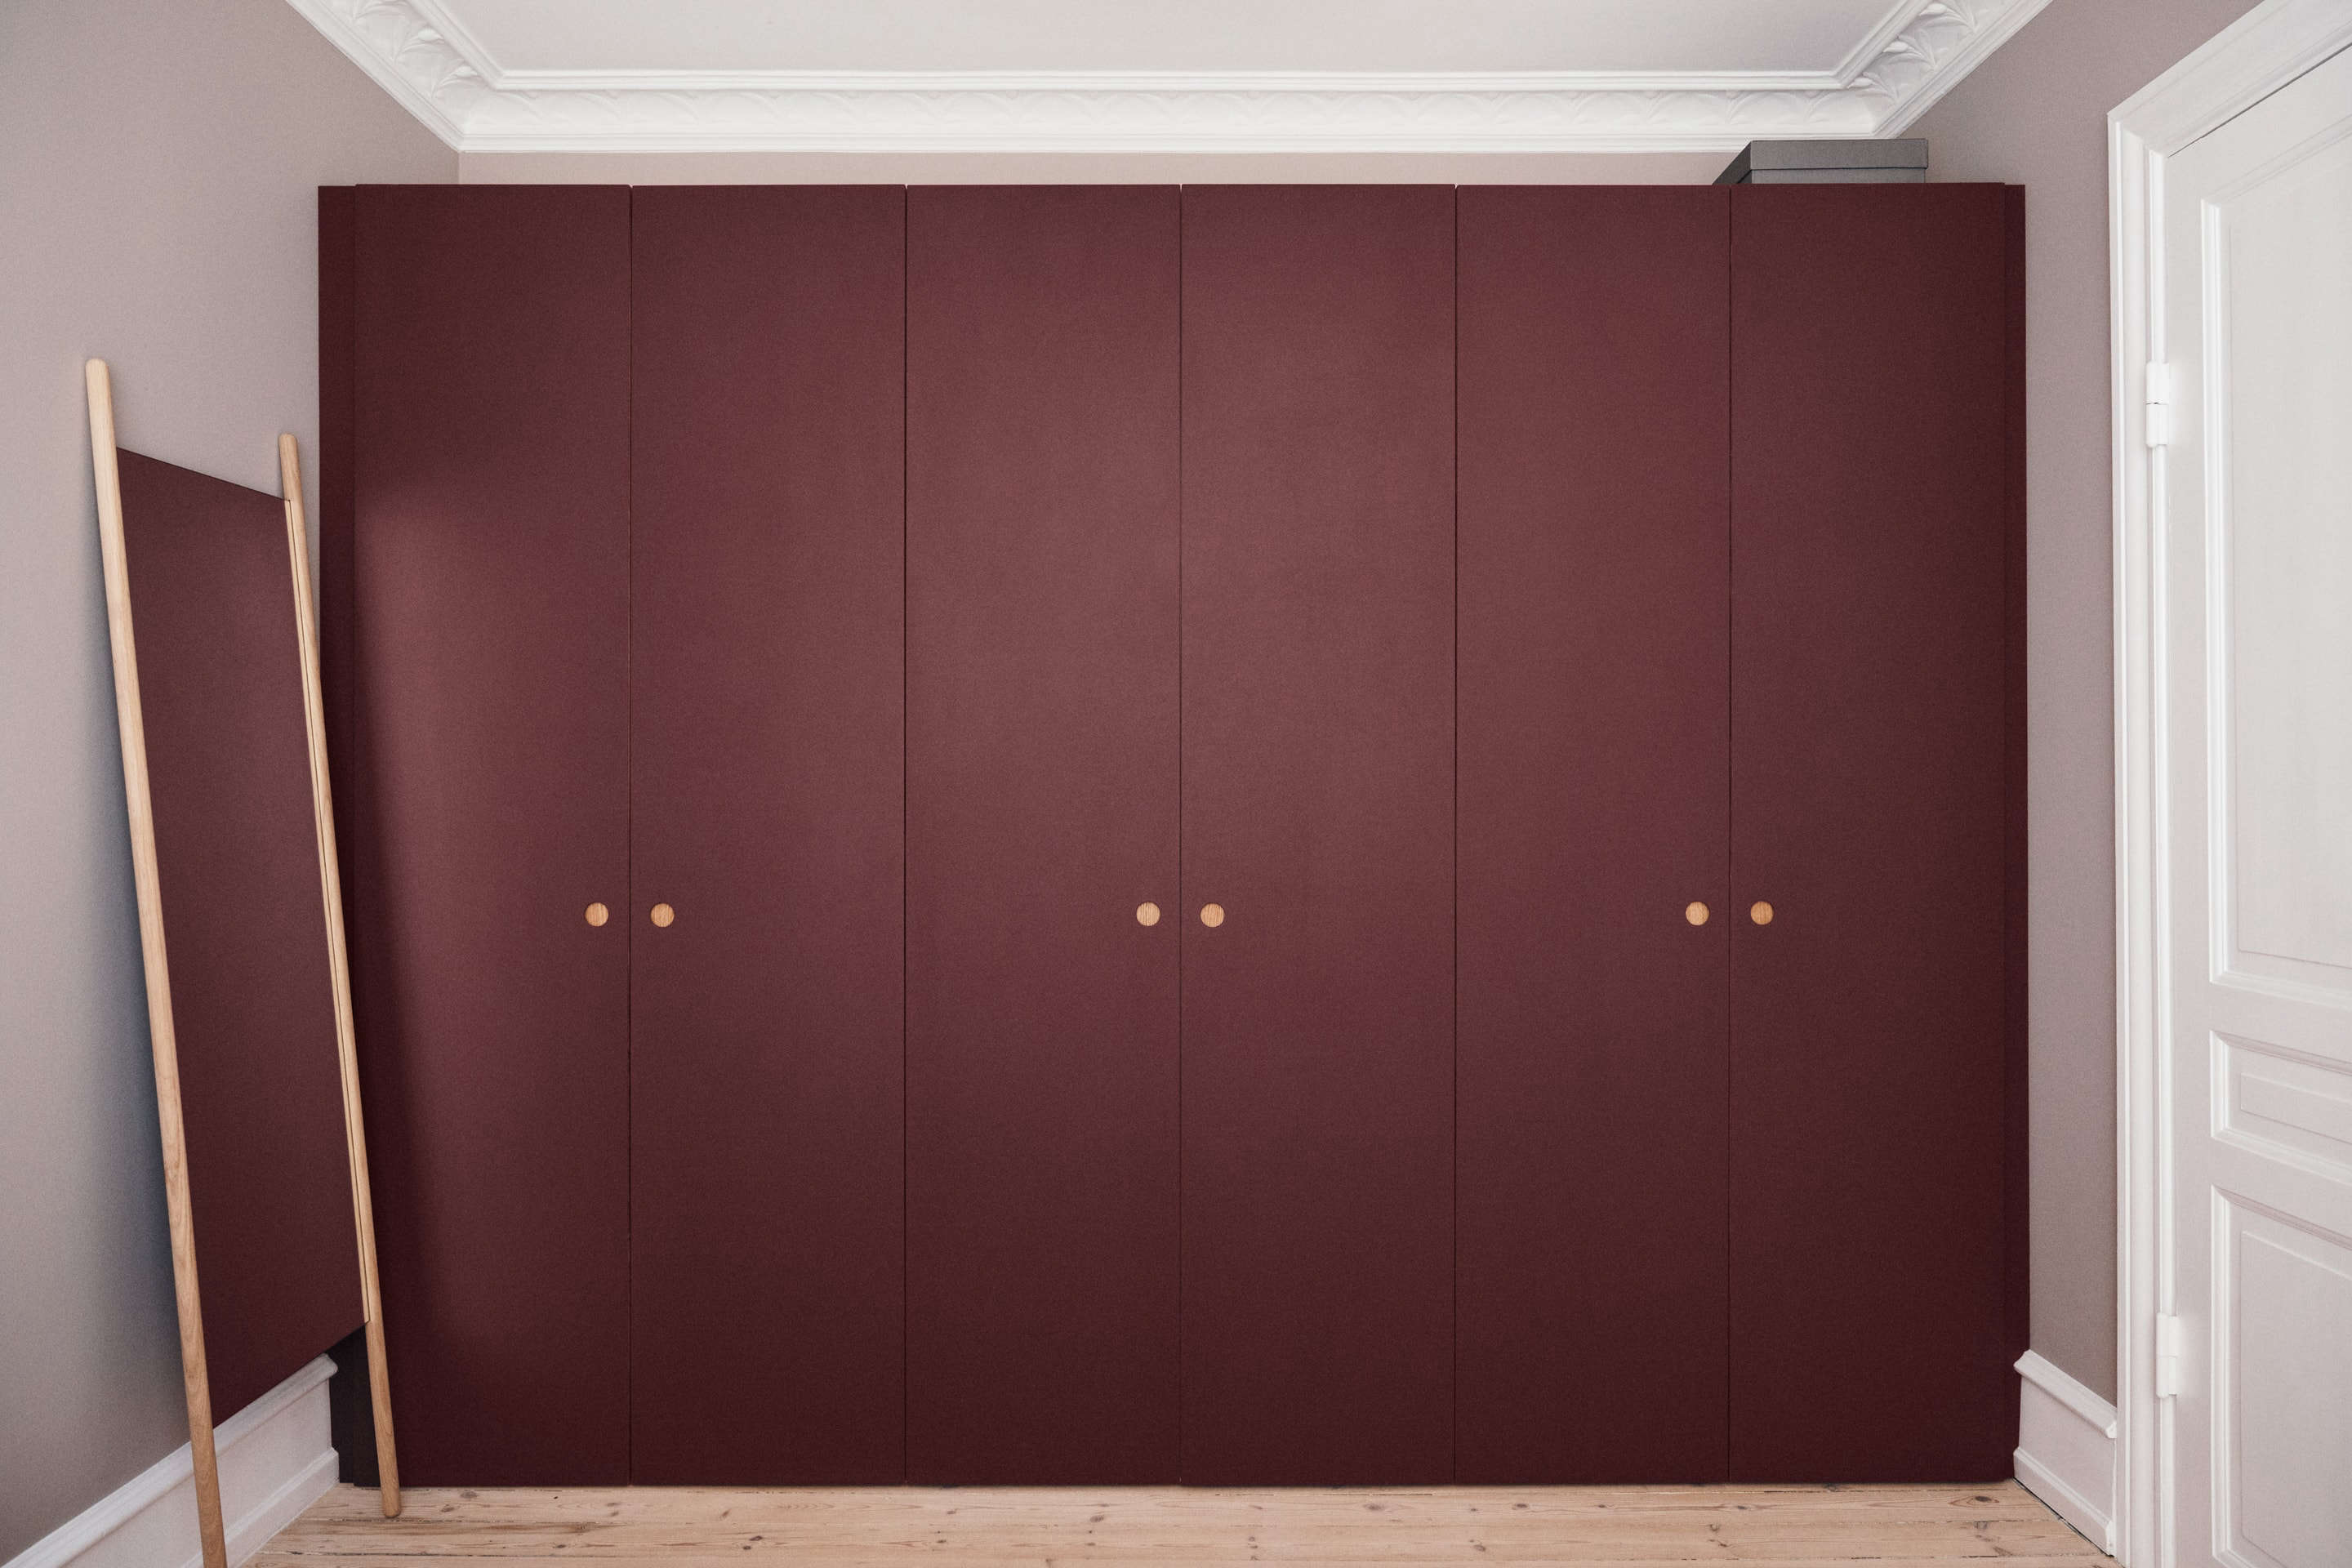 10 Favorite Ikea Pax Wardrobe Hacks From Designers